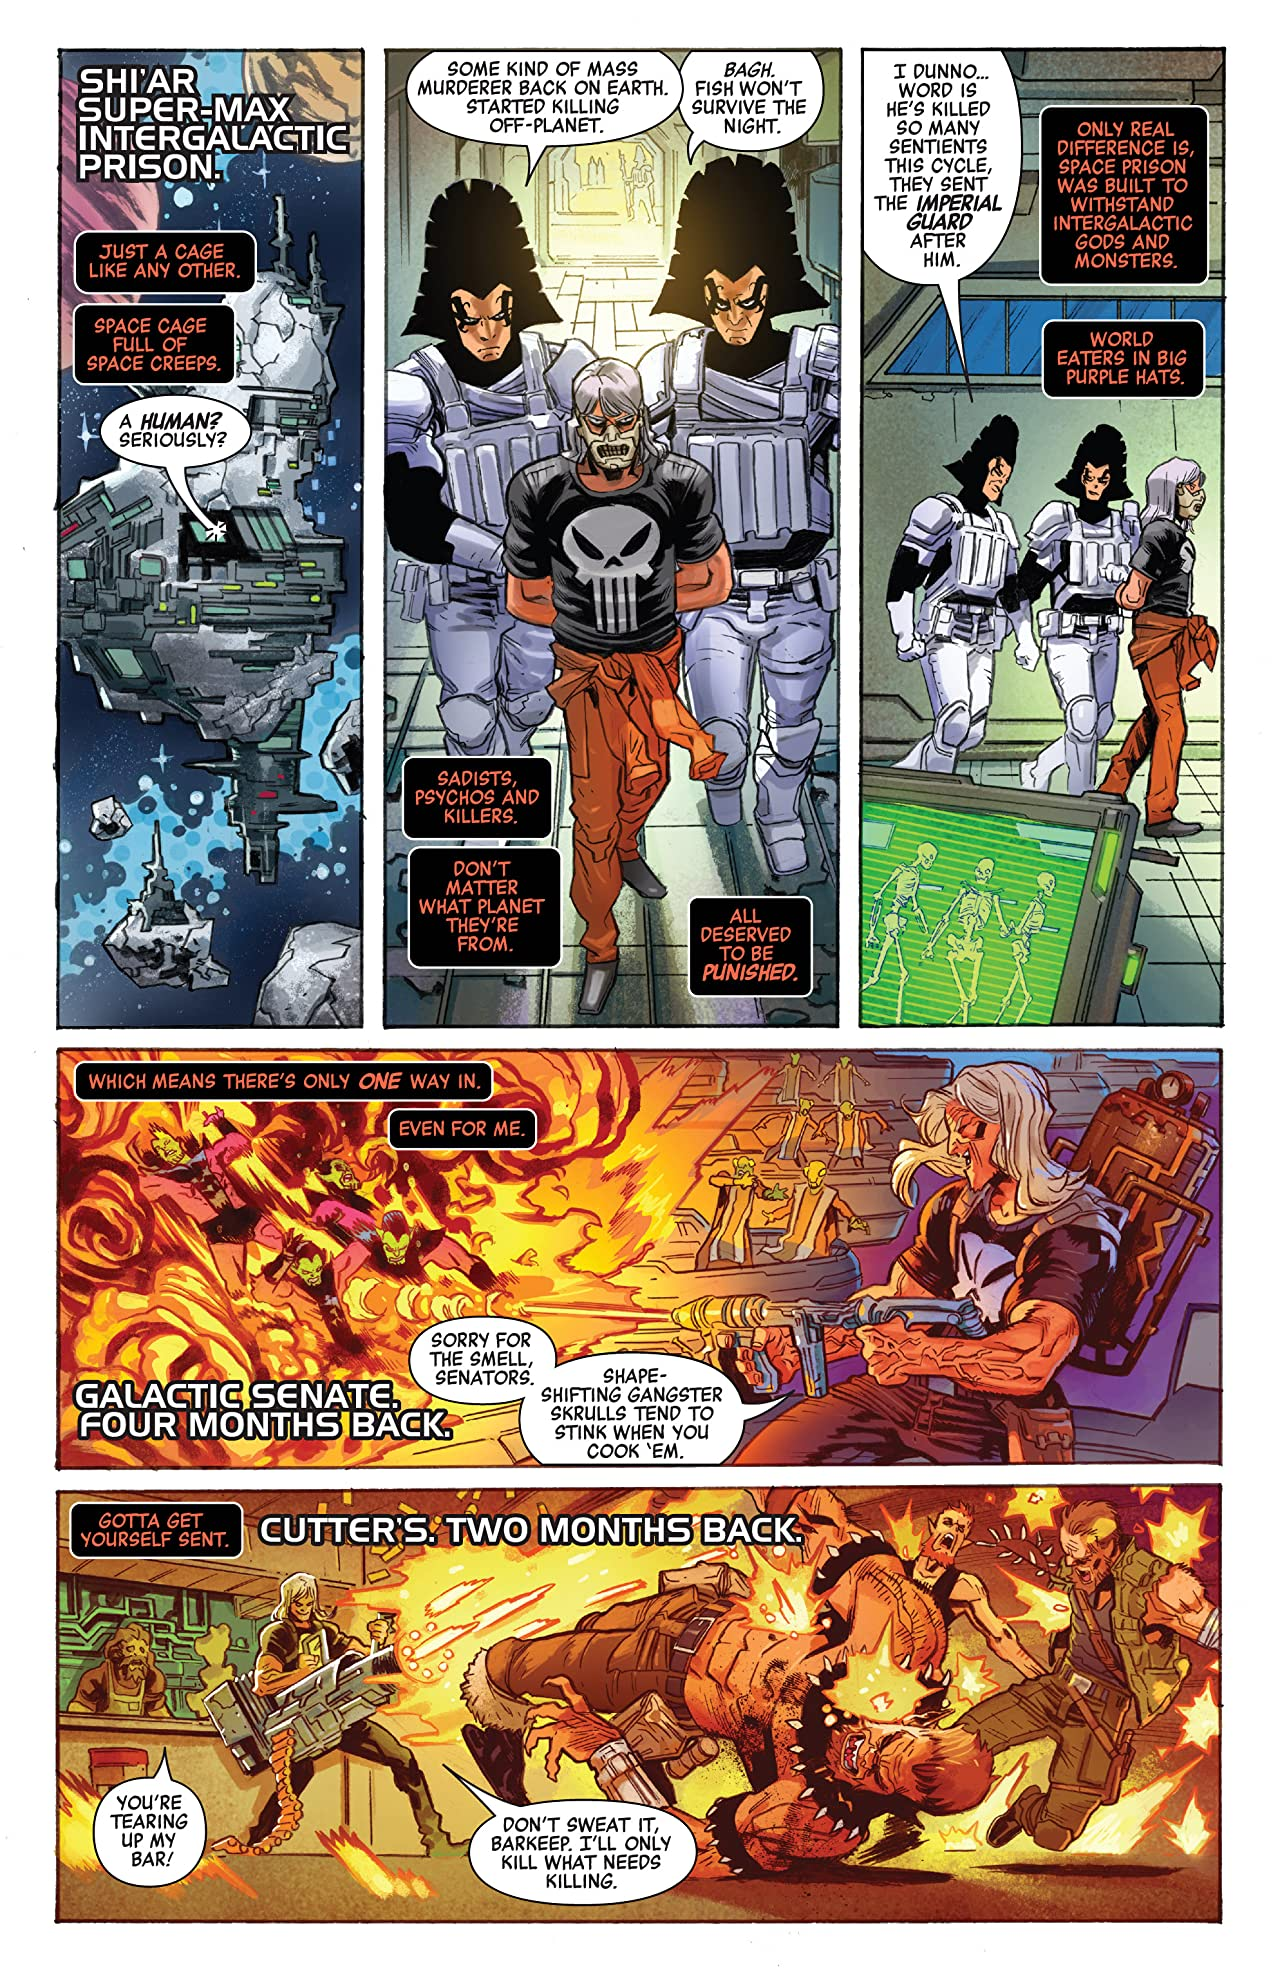 Revenge Of The Cosmic Ghost Rider (2019-2020) #1 (of 5)